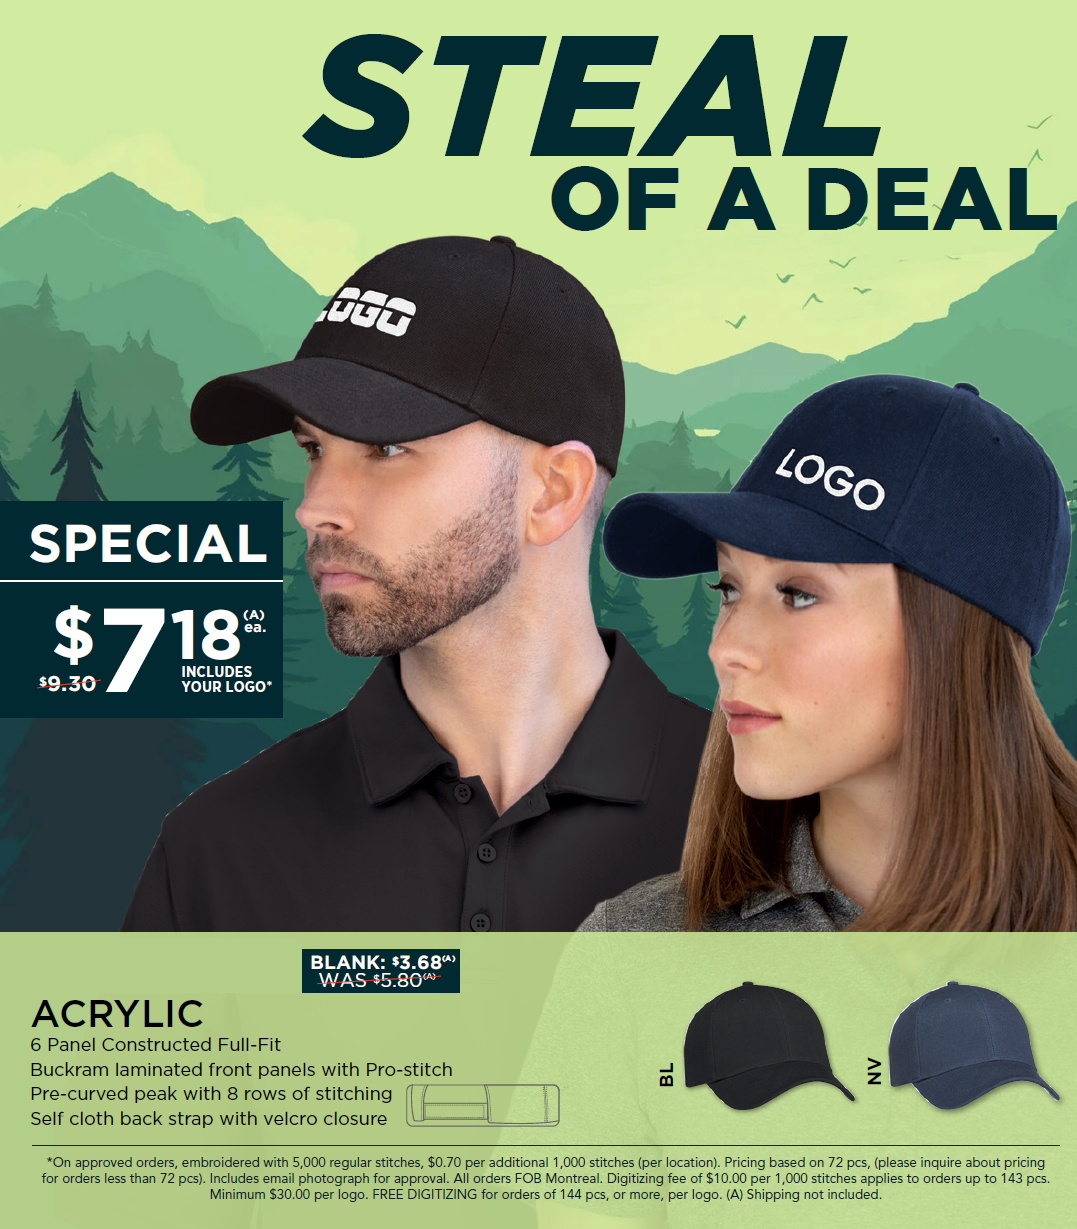 Hat special with logo from ABADOO Promotion Group